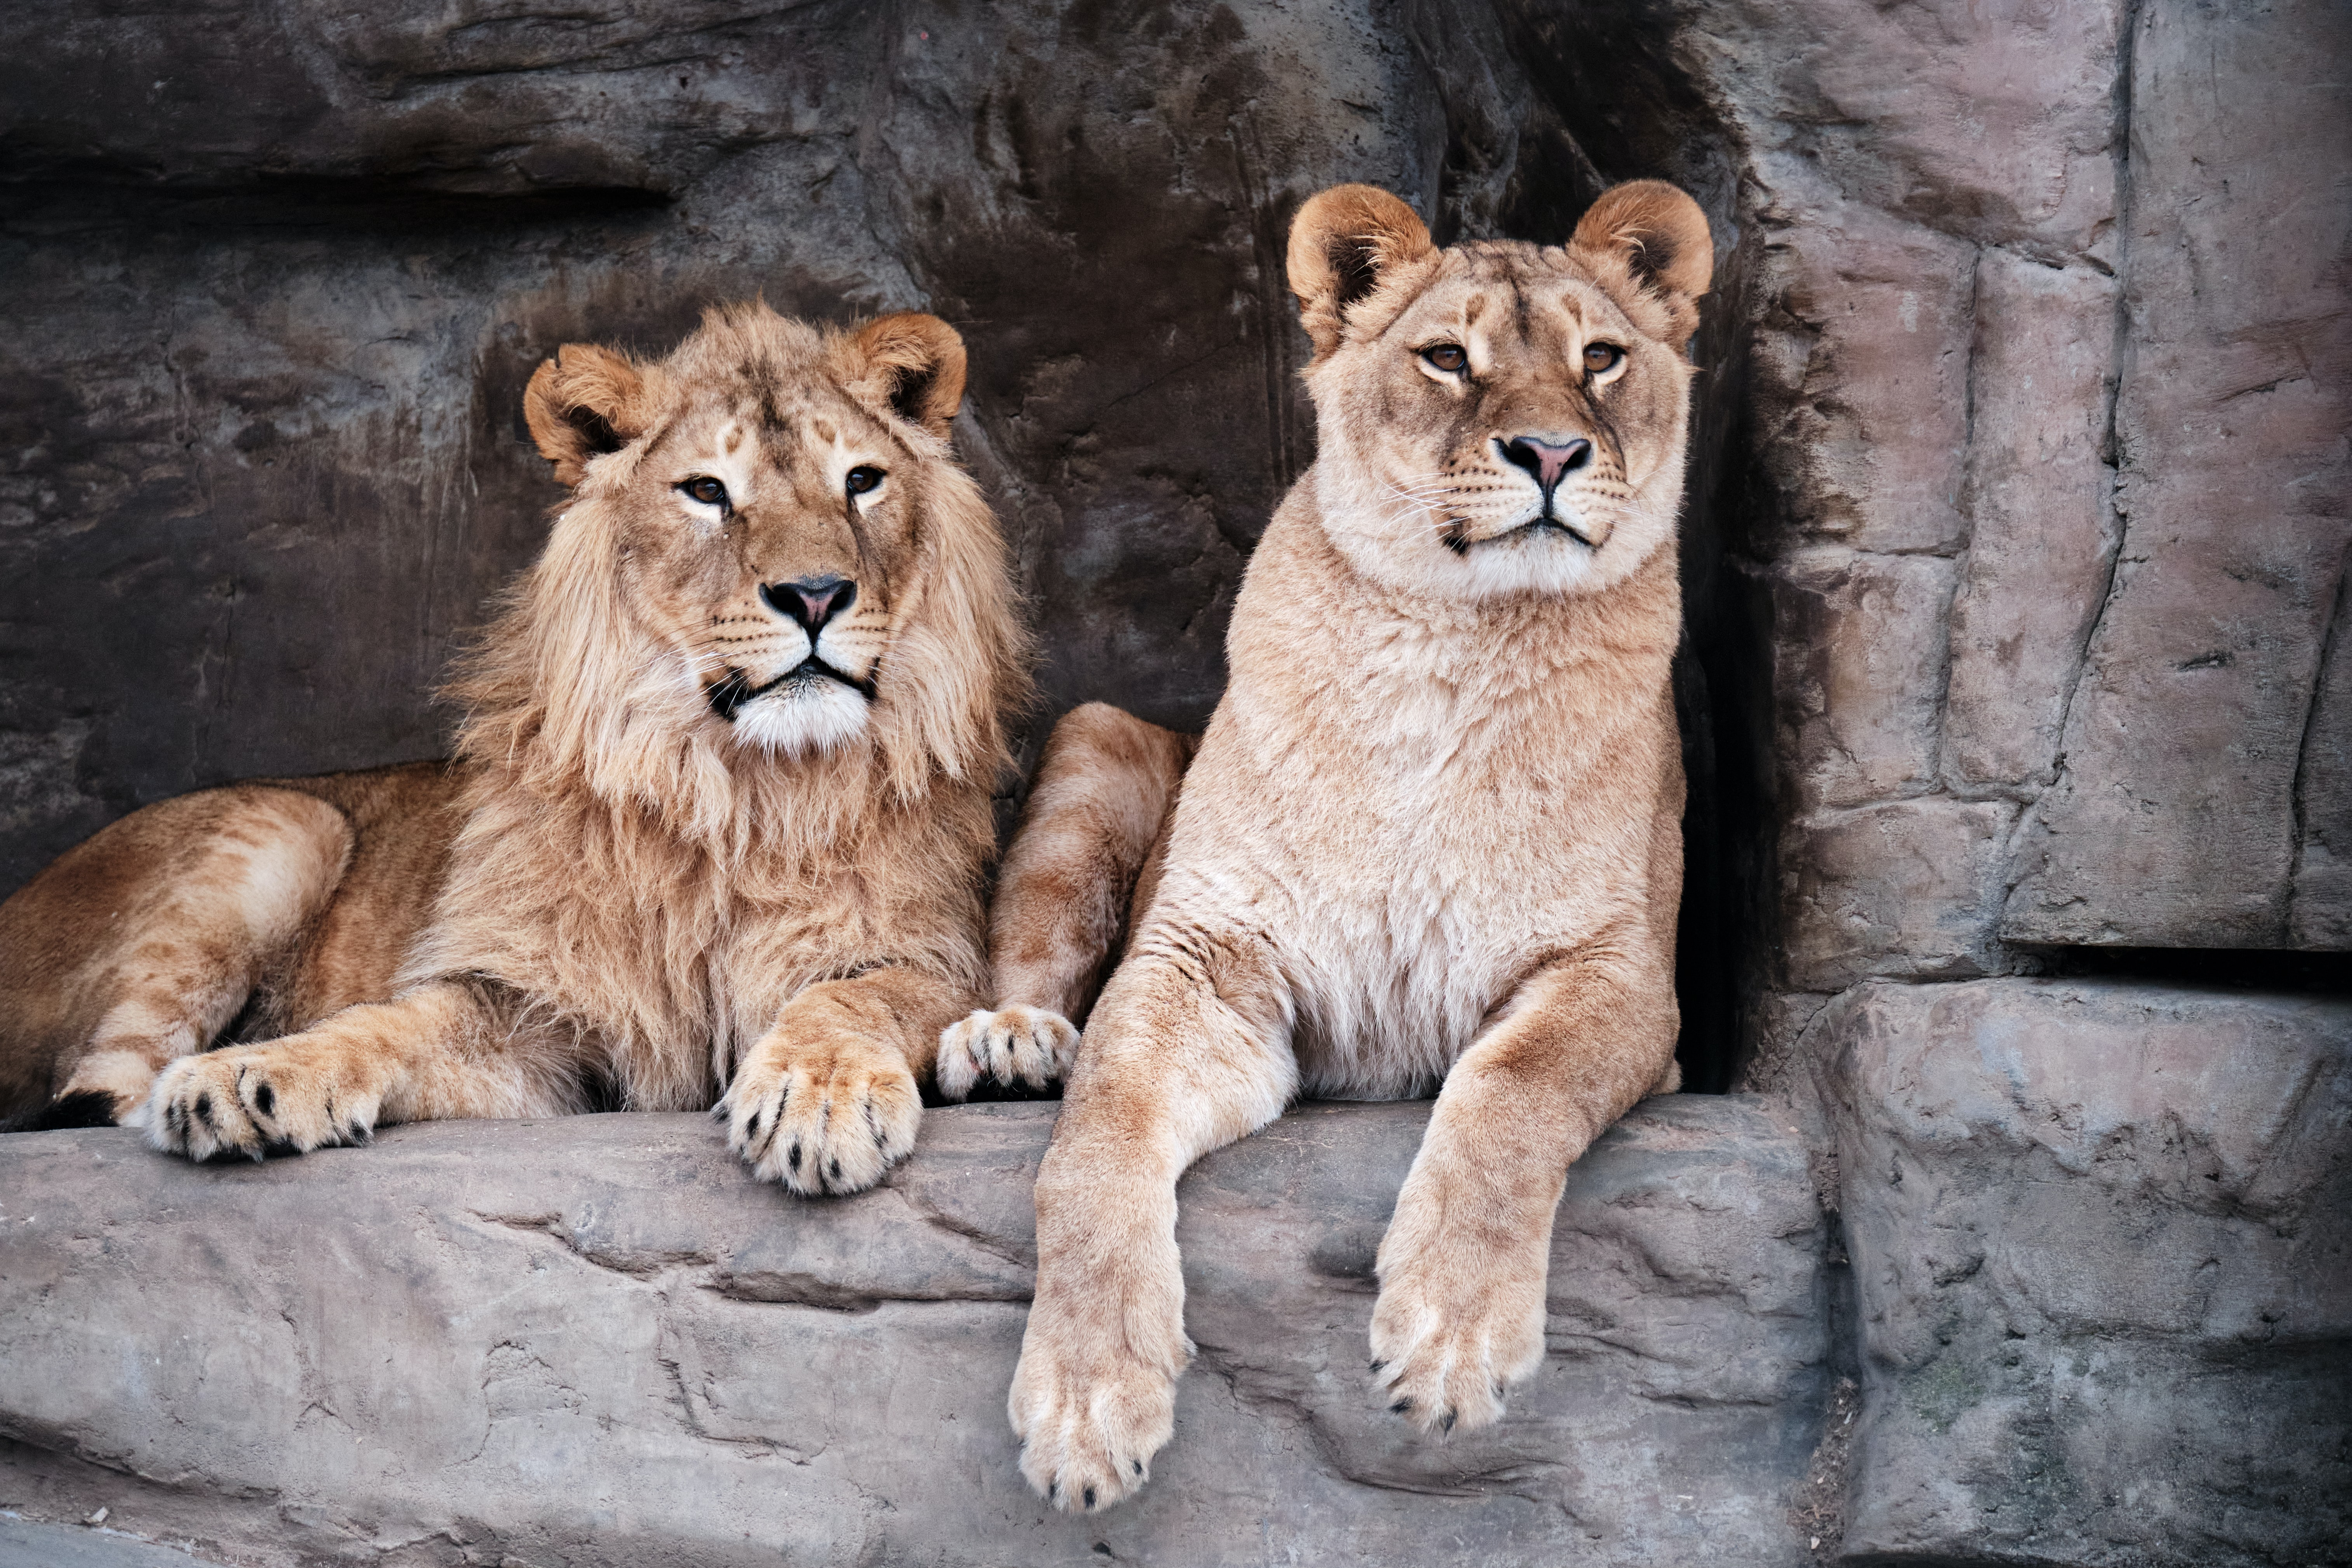 101621 download wallpaper Animals, Lioness, Lion, Animal, Big Cat, Predator screensavers and pictures for free